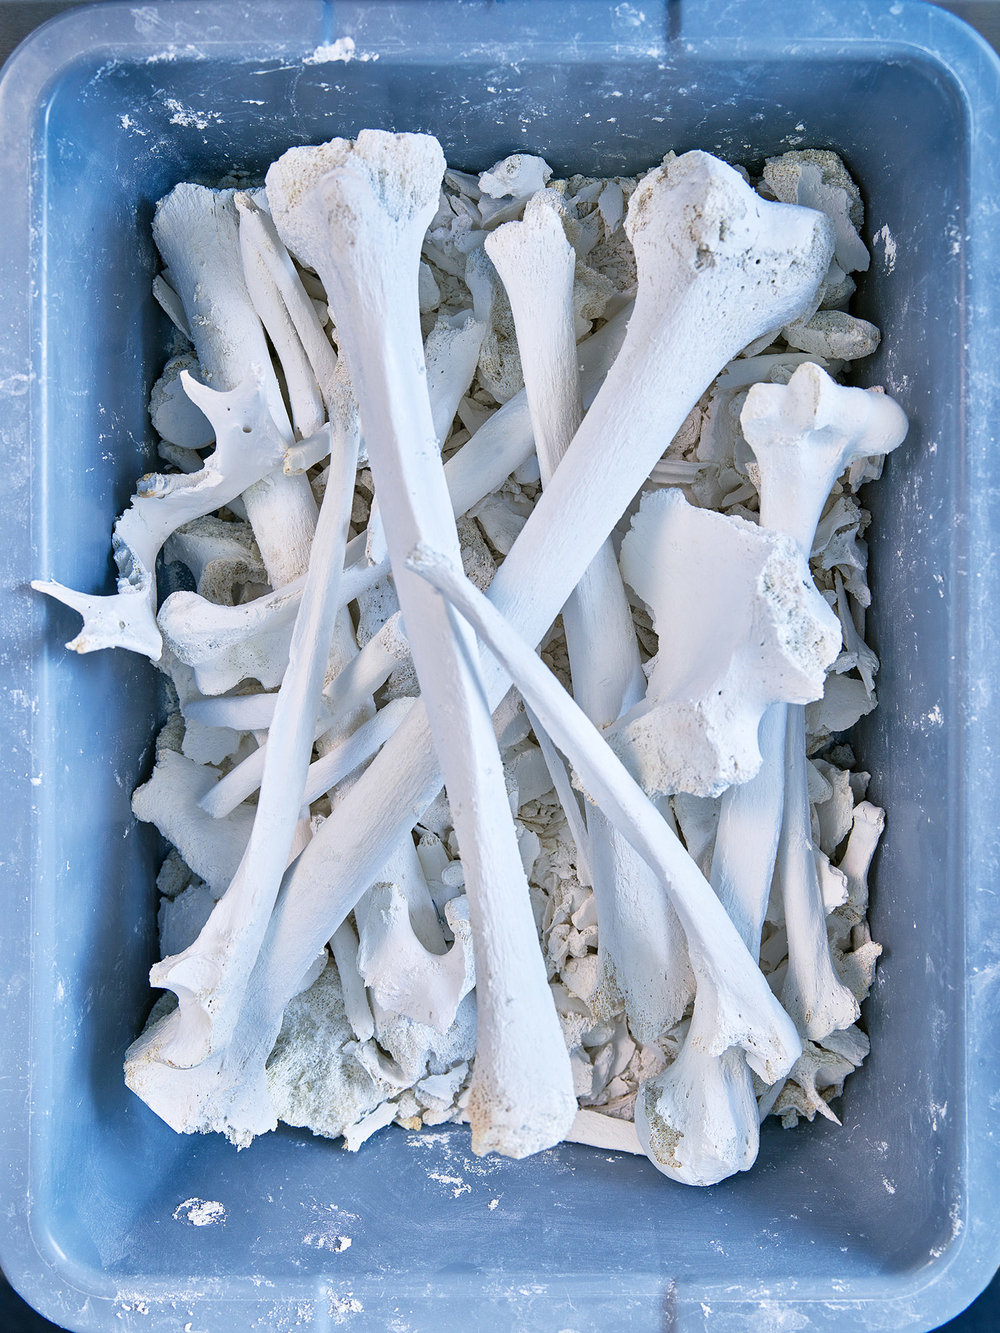 Human Bones Processed by Alkaline Hydrolysis, UCLA, Los Angeles, California, 2017